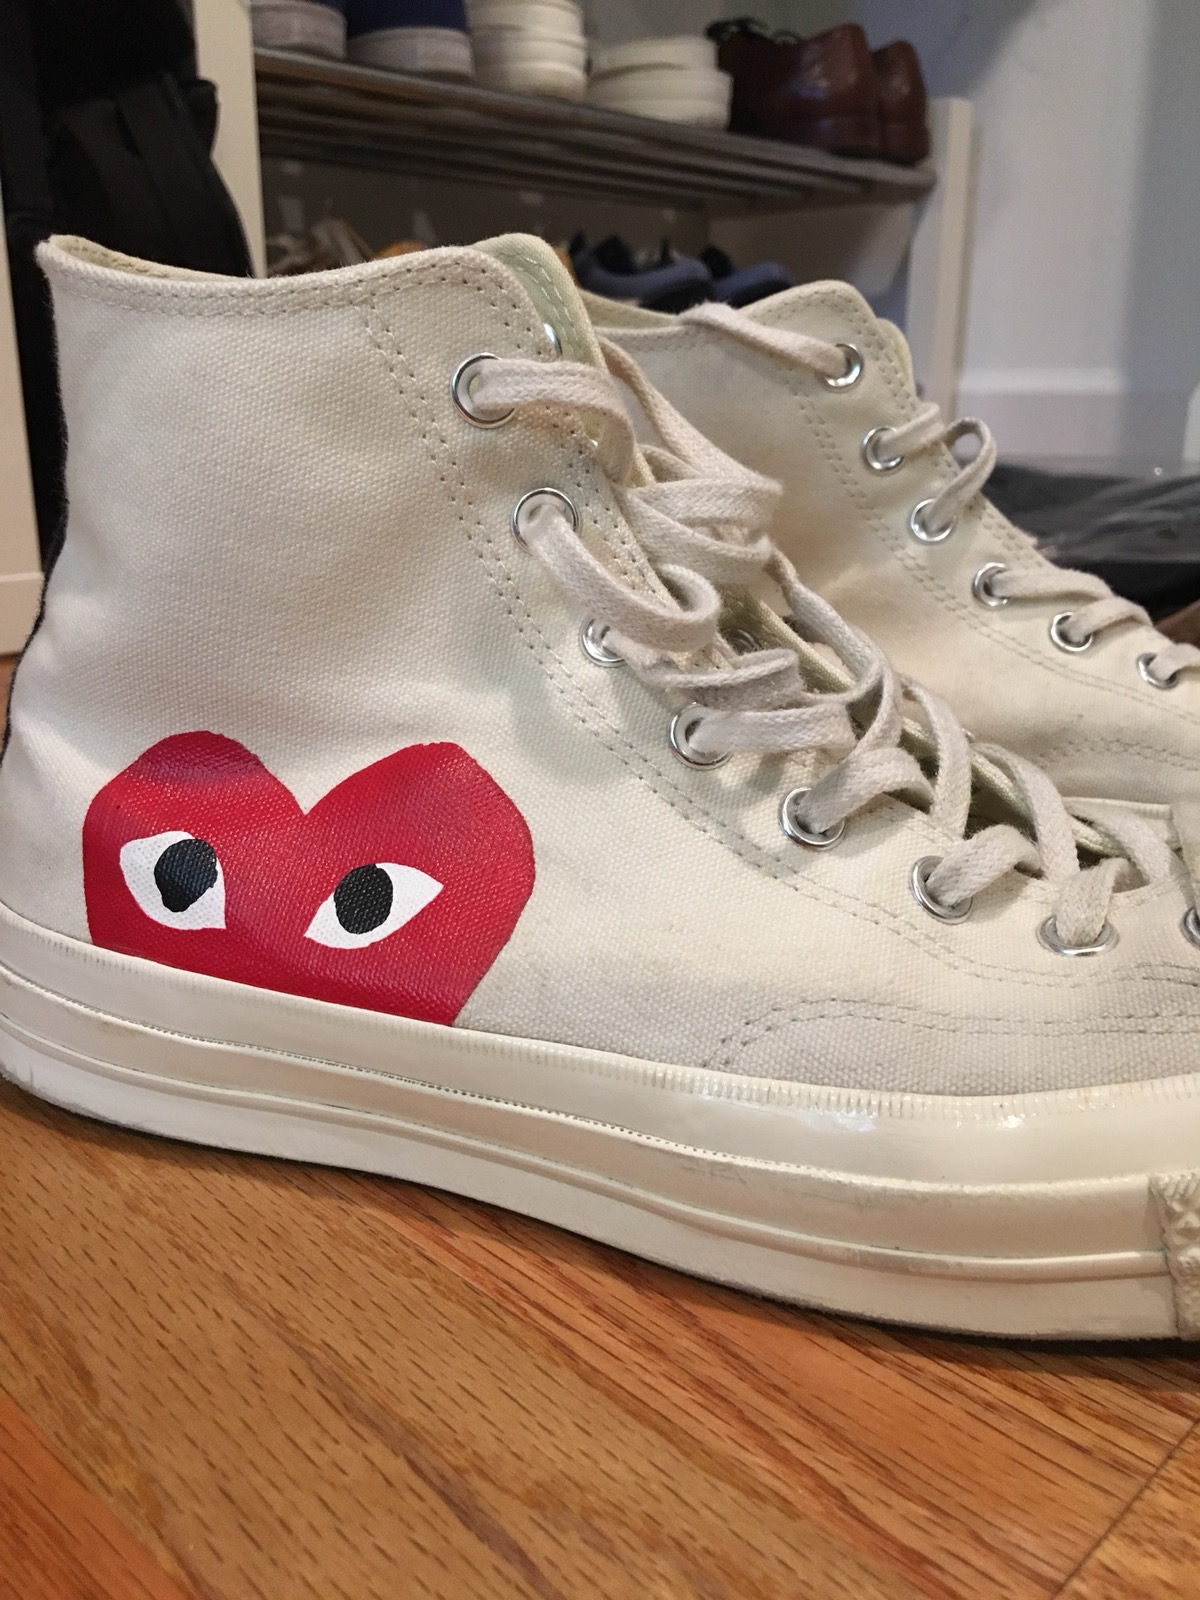 9b3c4cc54e0c Converse CDG Converse White High Tops Size 10 - Hi-Top Sneakers for Sale -  Grailed